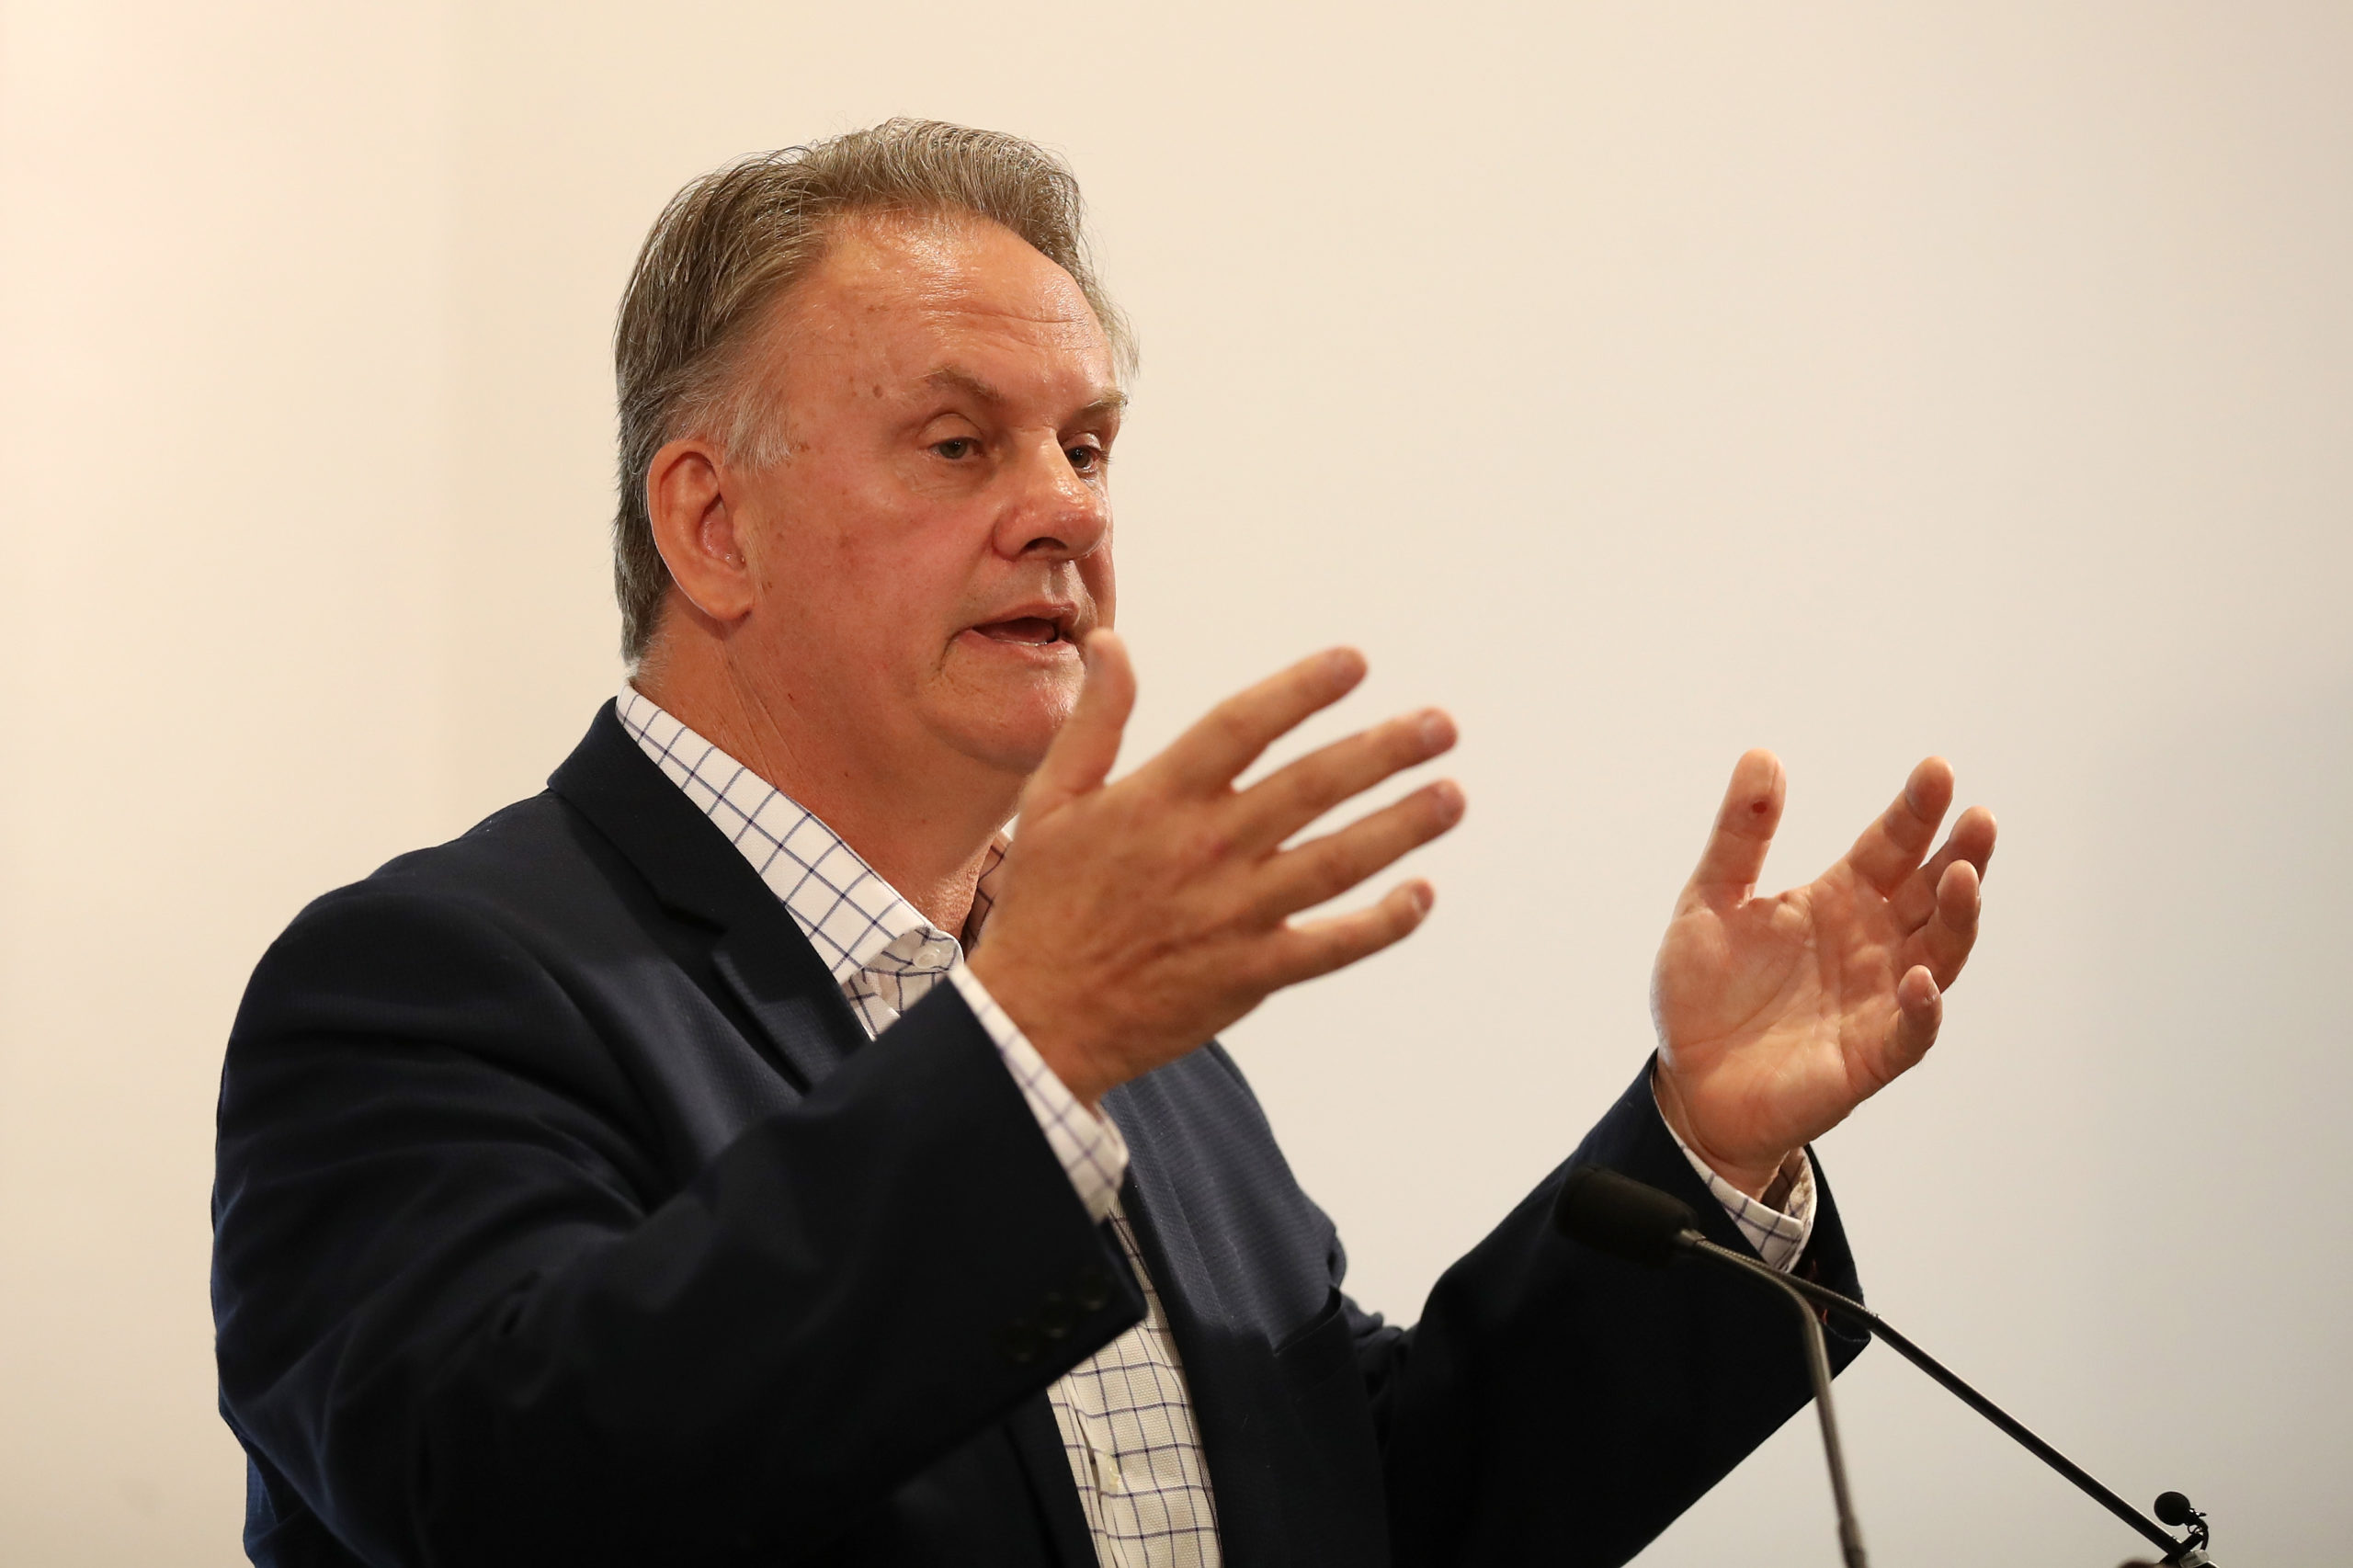 One Nation's Mark Latham is pressing a bill to outlaw 'promotion' of gender ideology